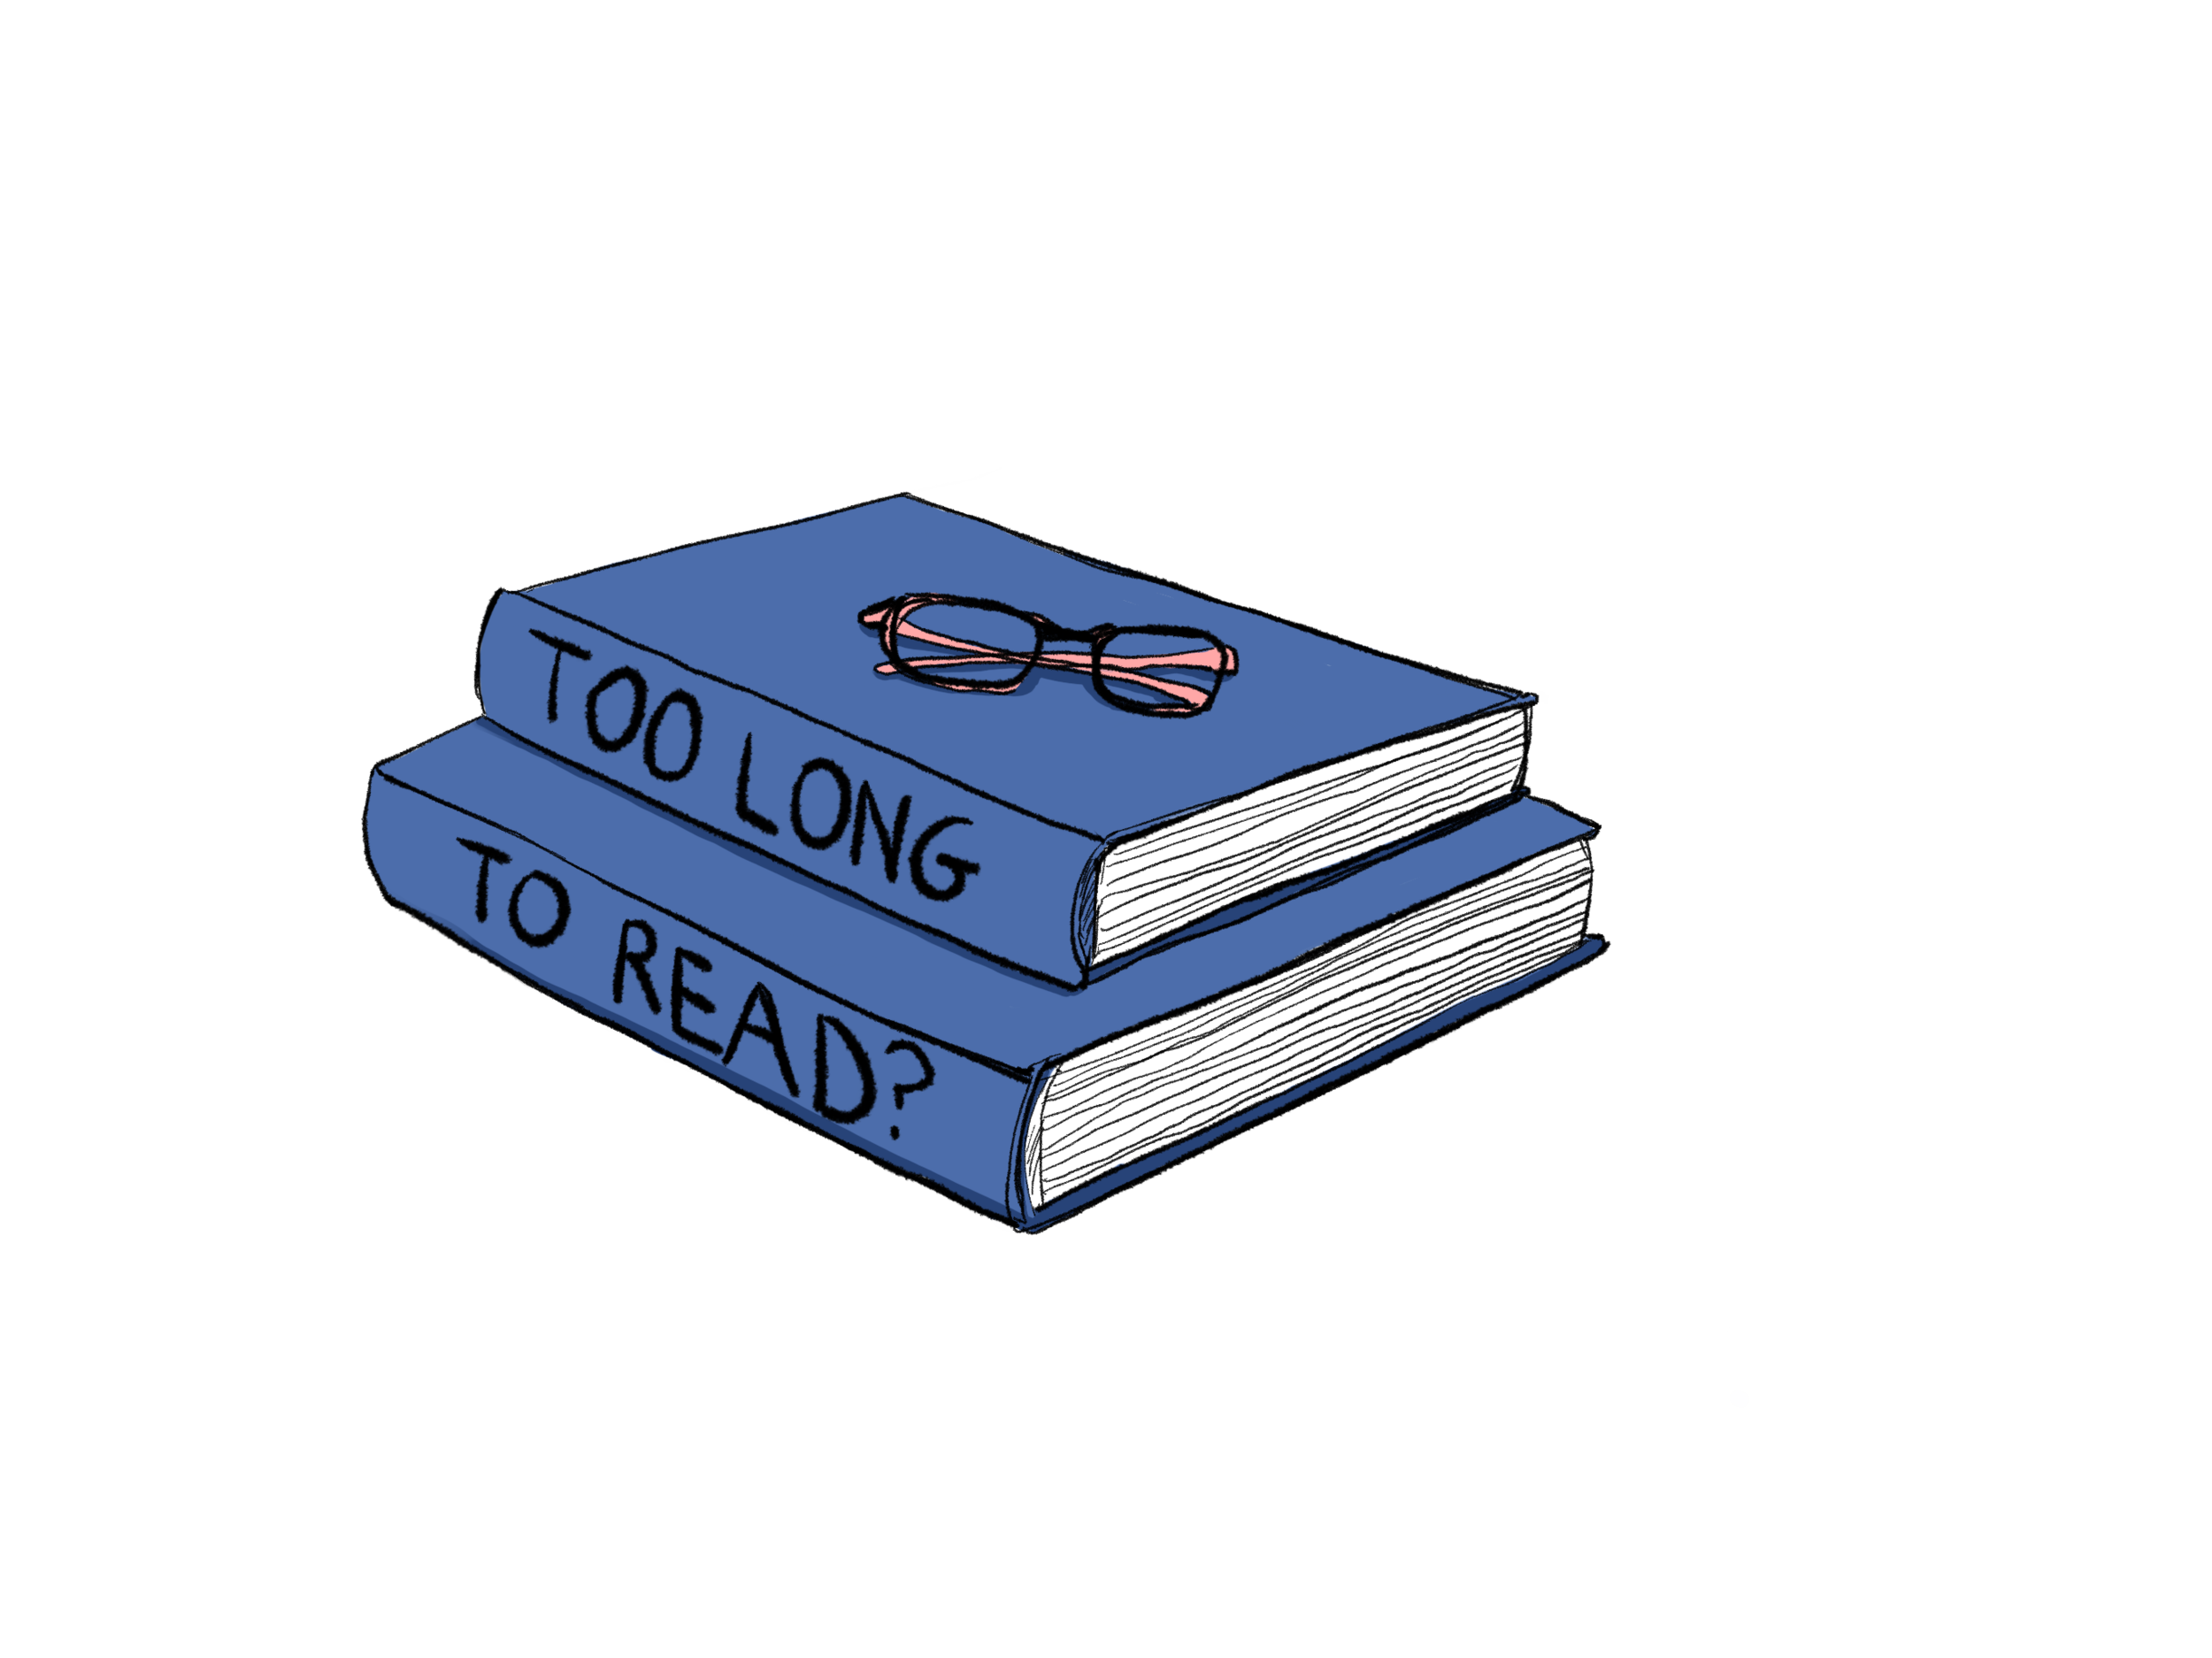 Too long to read book.png